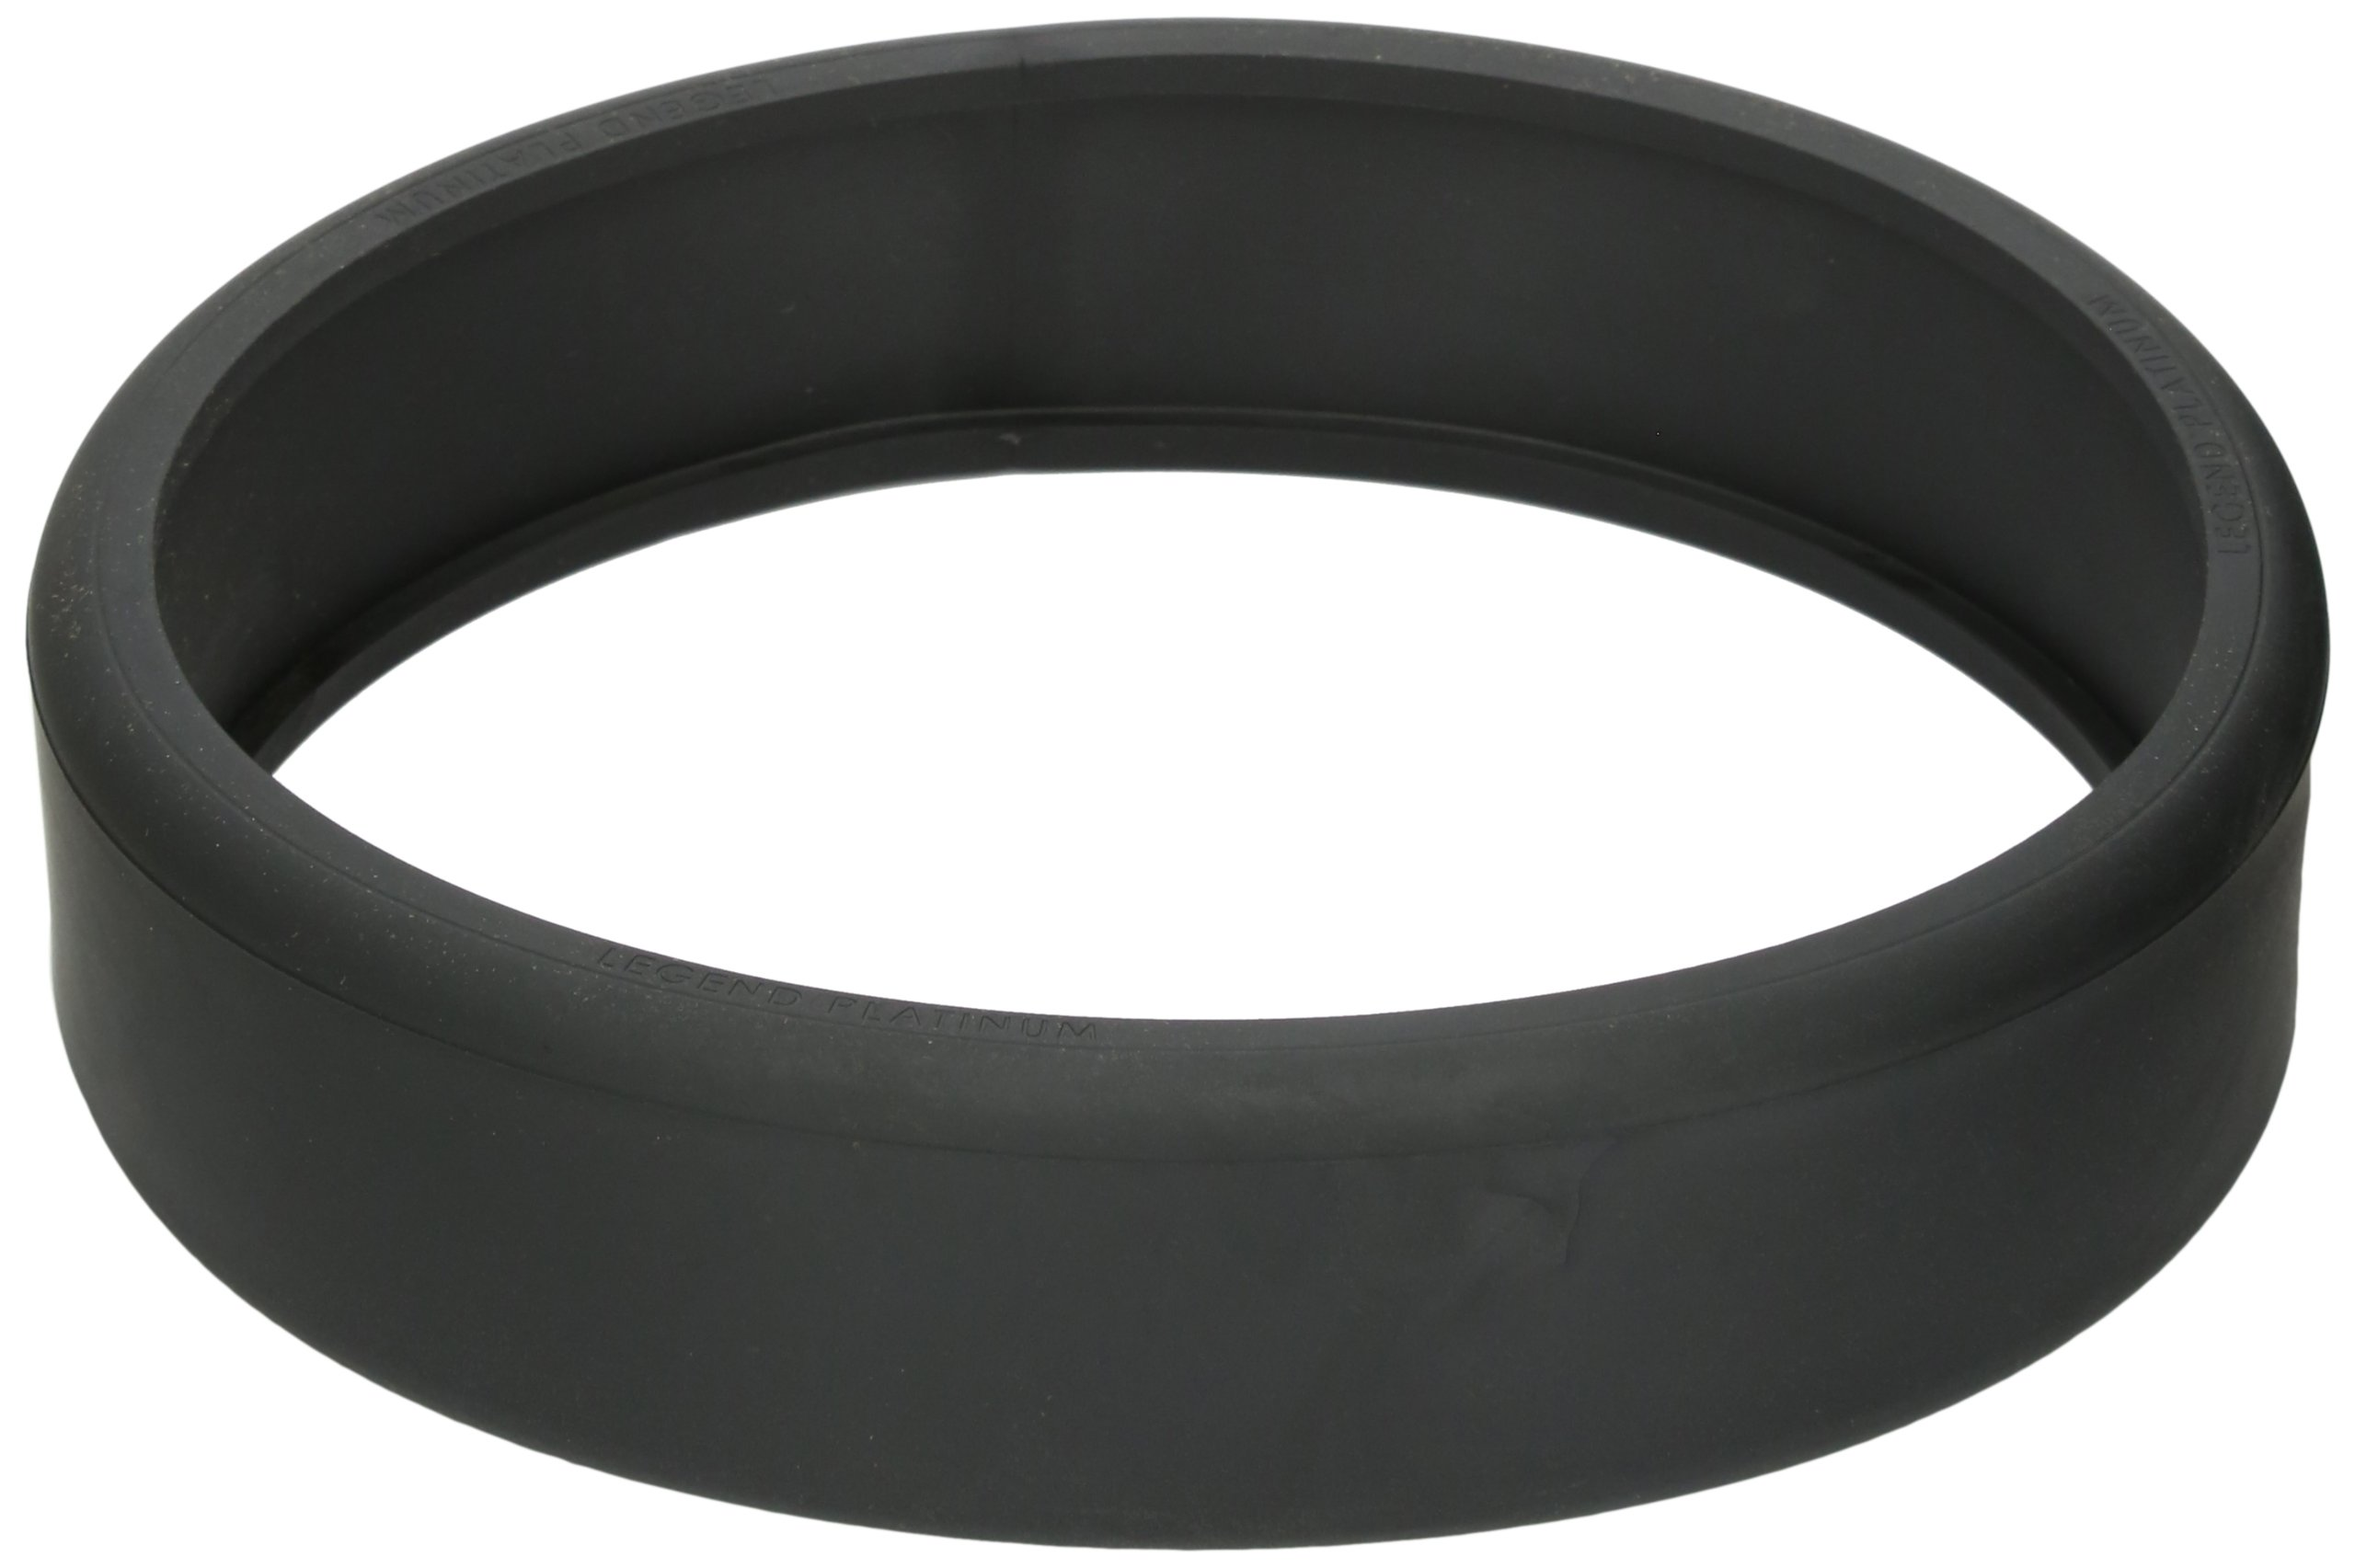 Pentair 370405Z Replacement Rubber Tire for Kreepy Krauly Platinum Cleaner, Black by Pentair (Image #1)